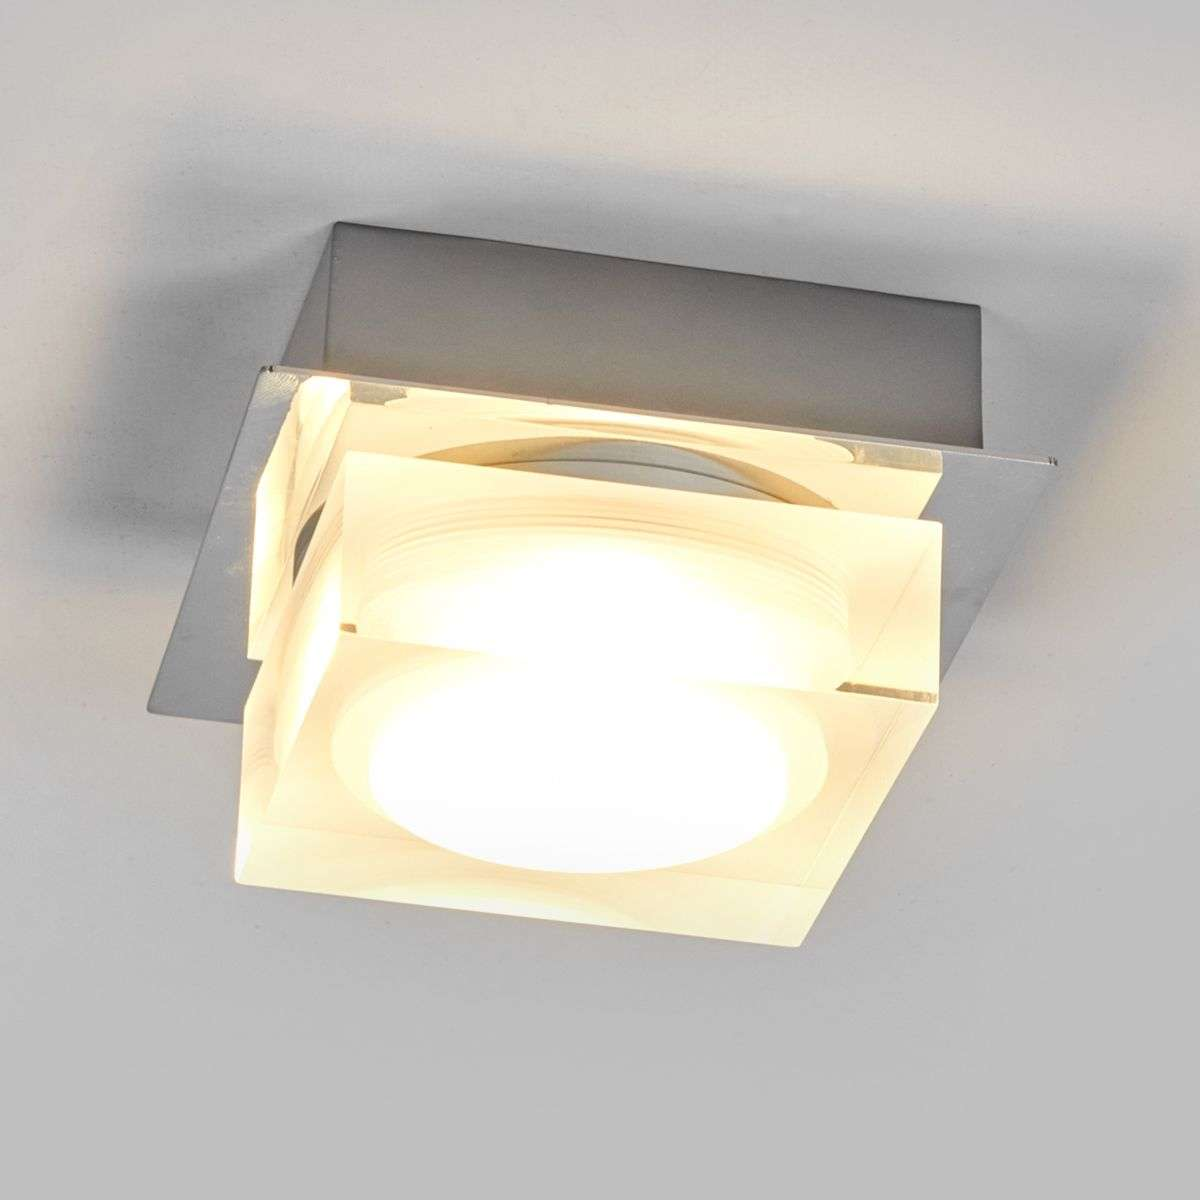 Decorative led ceiling lamp birte for bathrooms lights decorative led ceiling lamp birte for bathrooms 9641067 32 aloadofball Choice Image